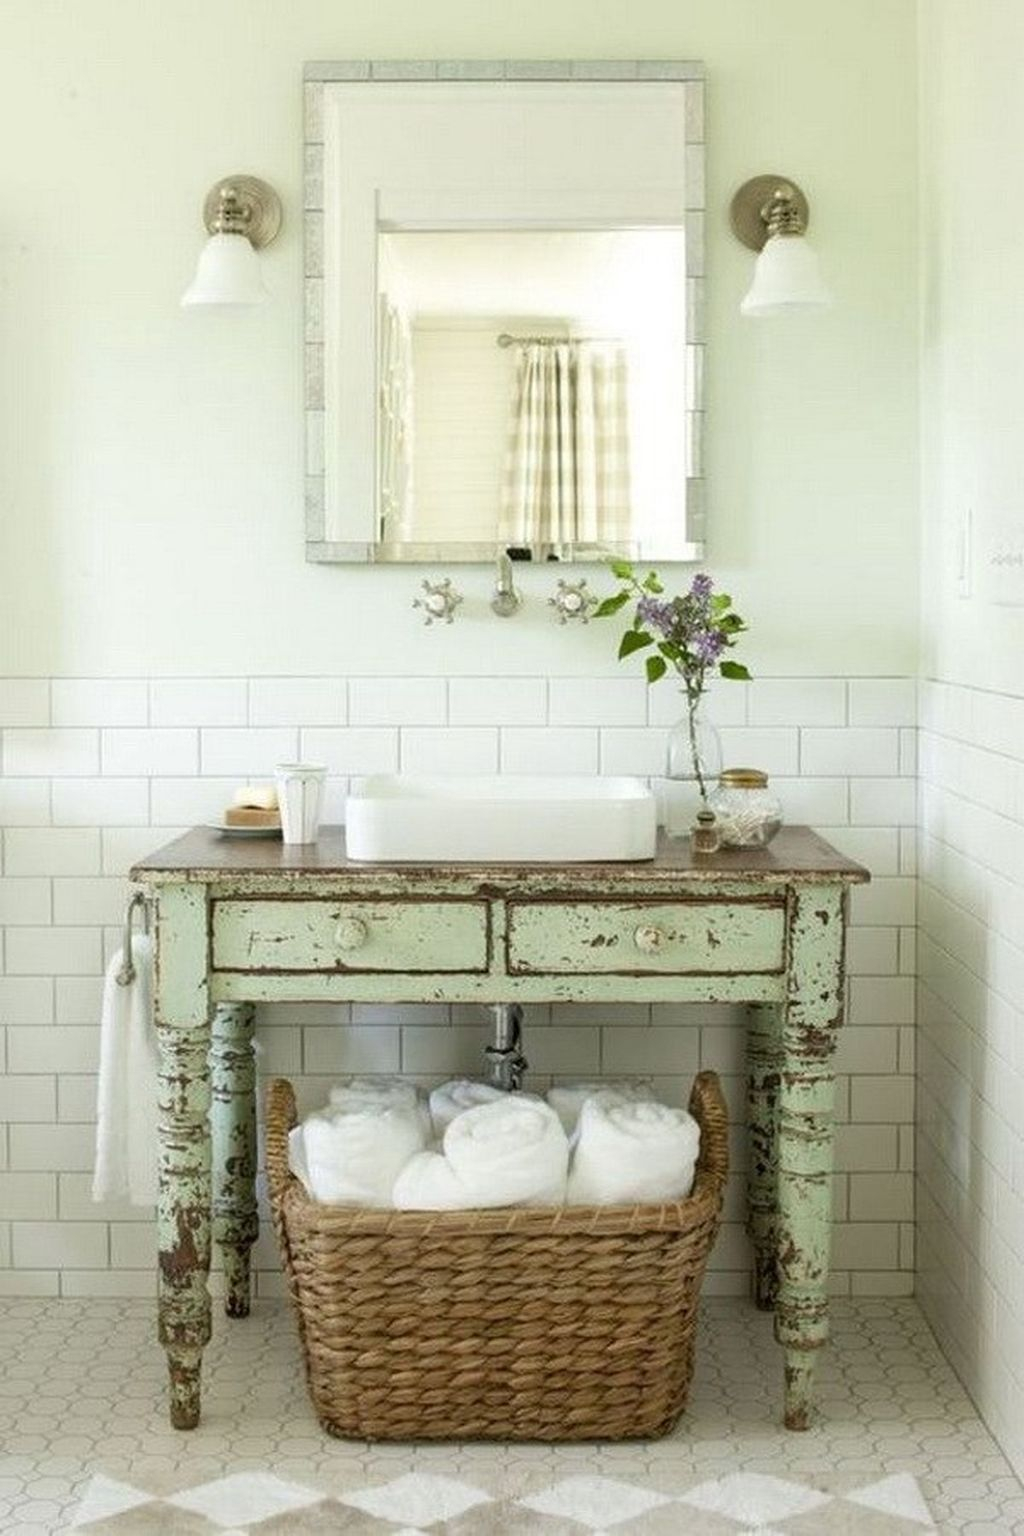 Inspiring Rustic Bathroom Vanity Remodel Ideas 50